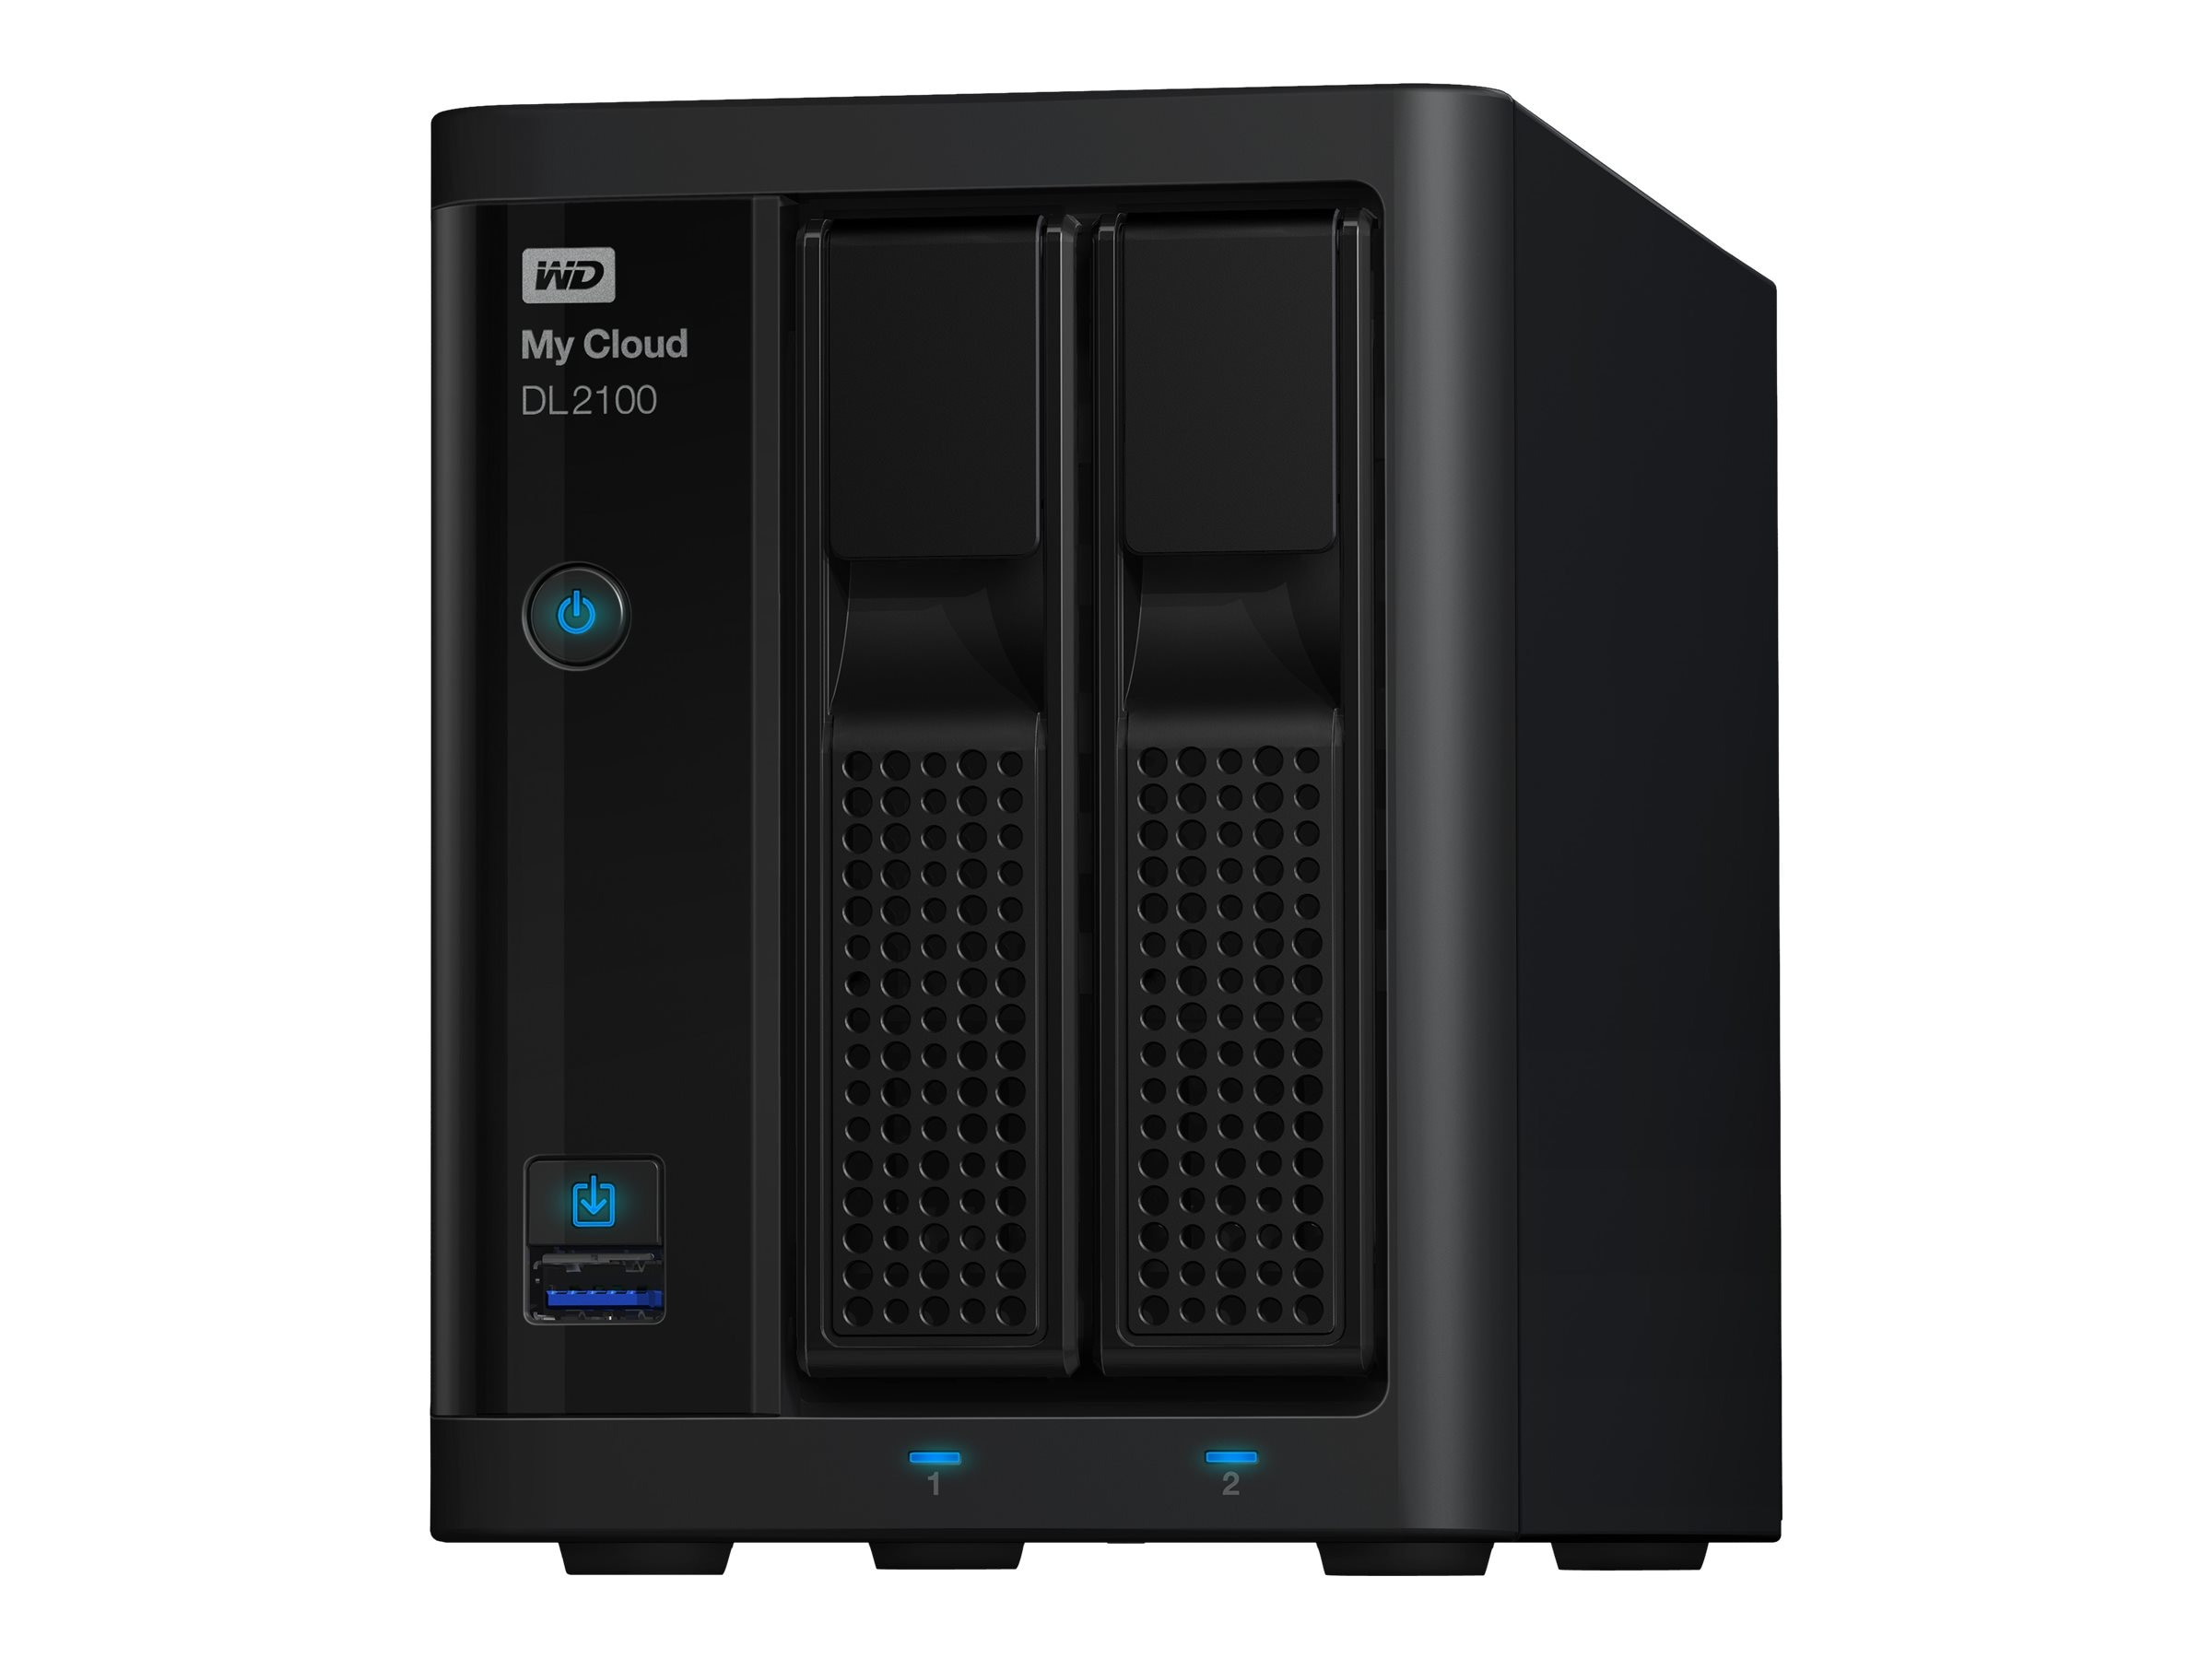 WD 8TB My Cloud DL2100 Network Attached Storage, WDBBAZ0080JBK-NESN, 18442739, Network Attached Storage